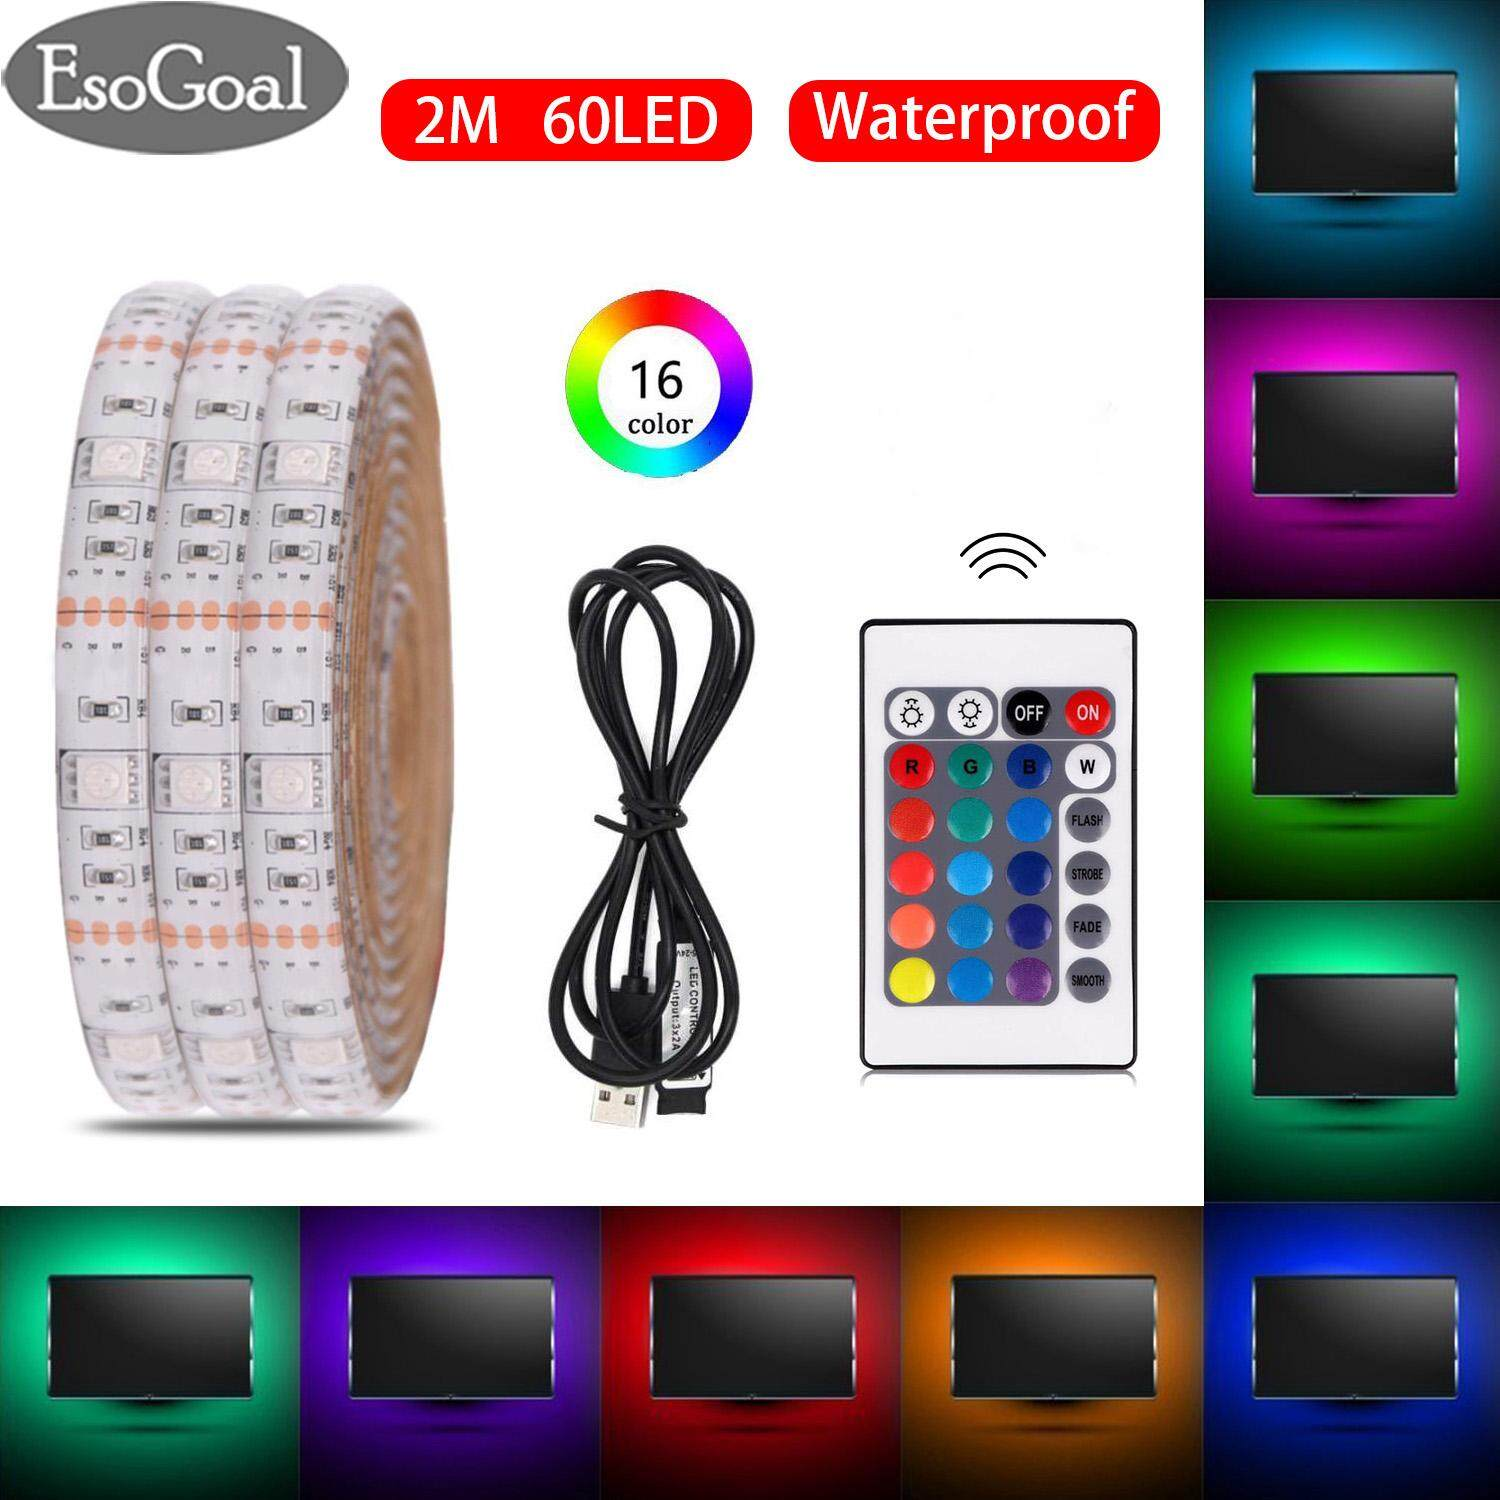 Led Lighting For Sale Lamps Prices Brands Review In View Product Details Waterproof Flexiable 12 Volt Circuit Esogoal Usb Strip Light Rgb Portable 5050 2m Tv Backlight Ip65 60leds